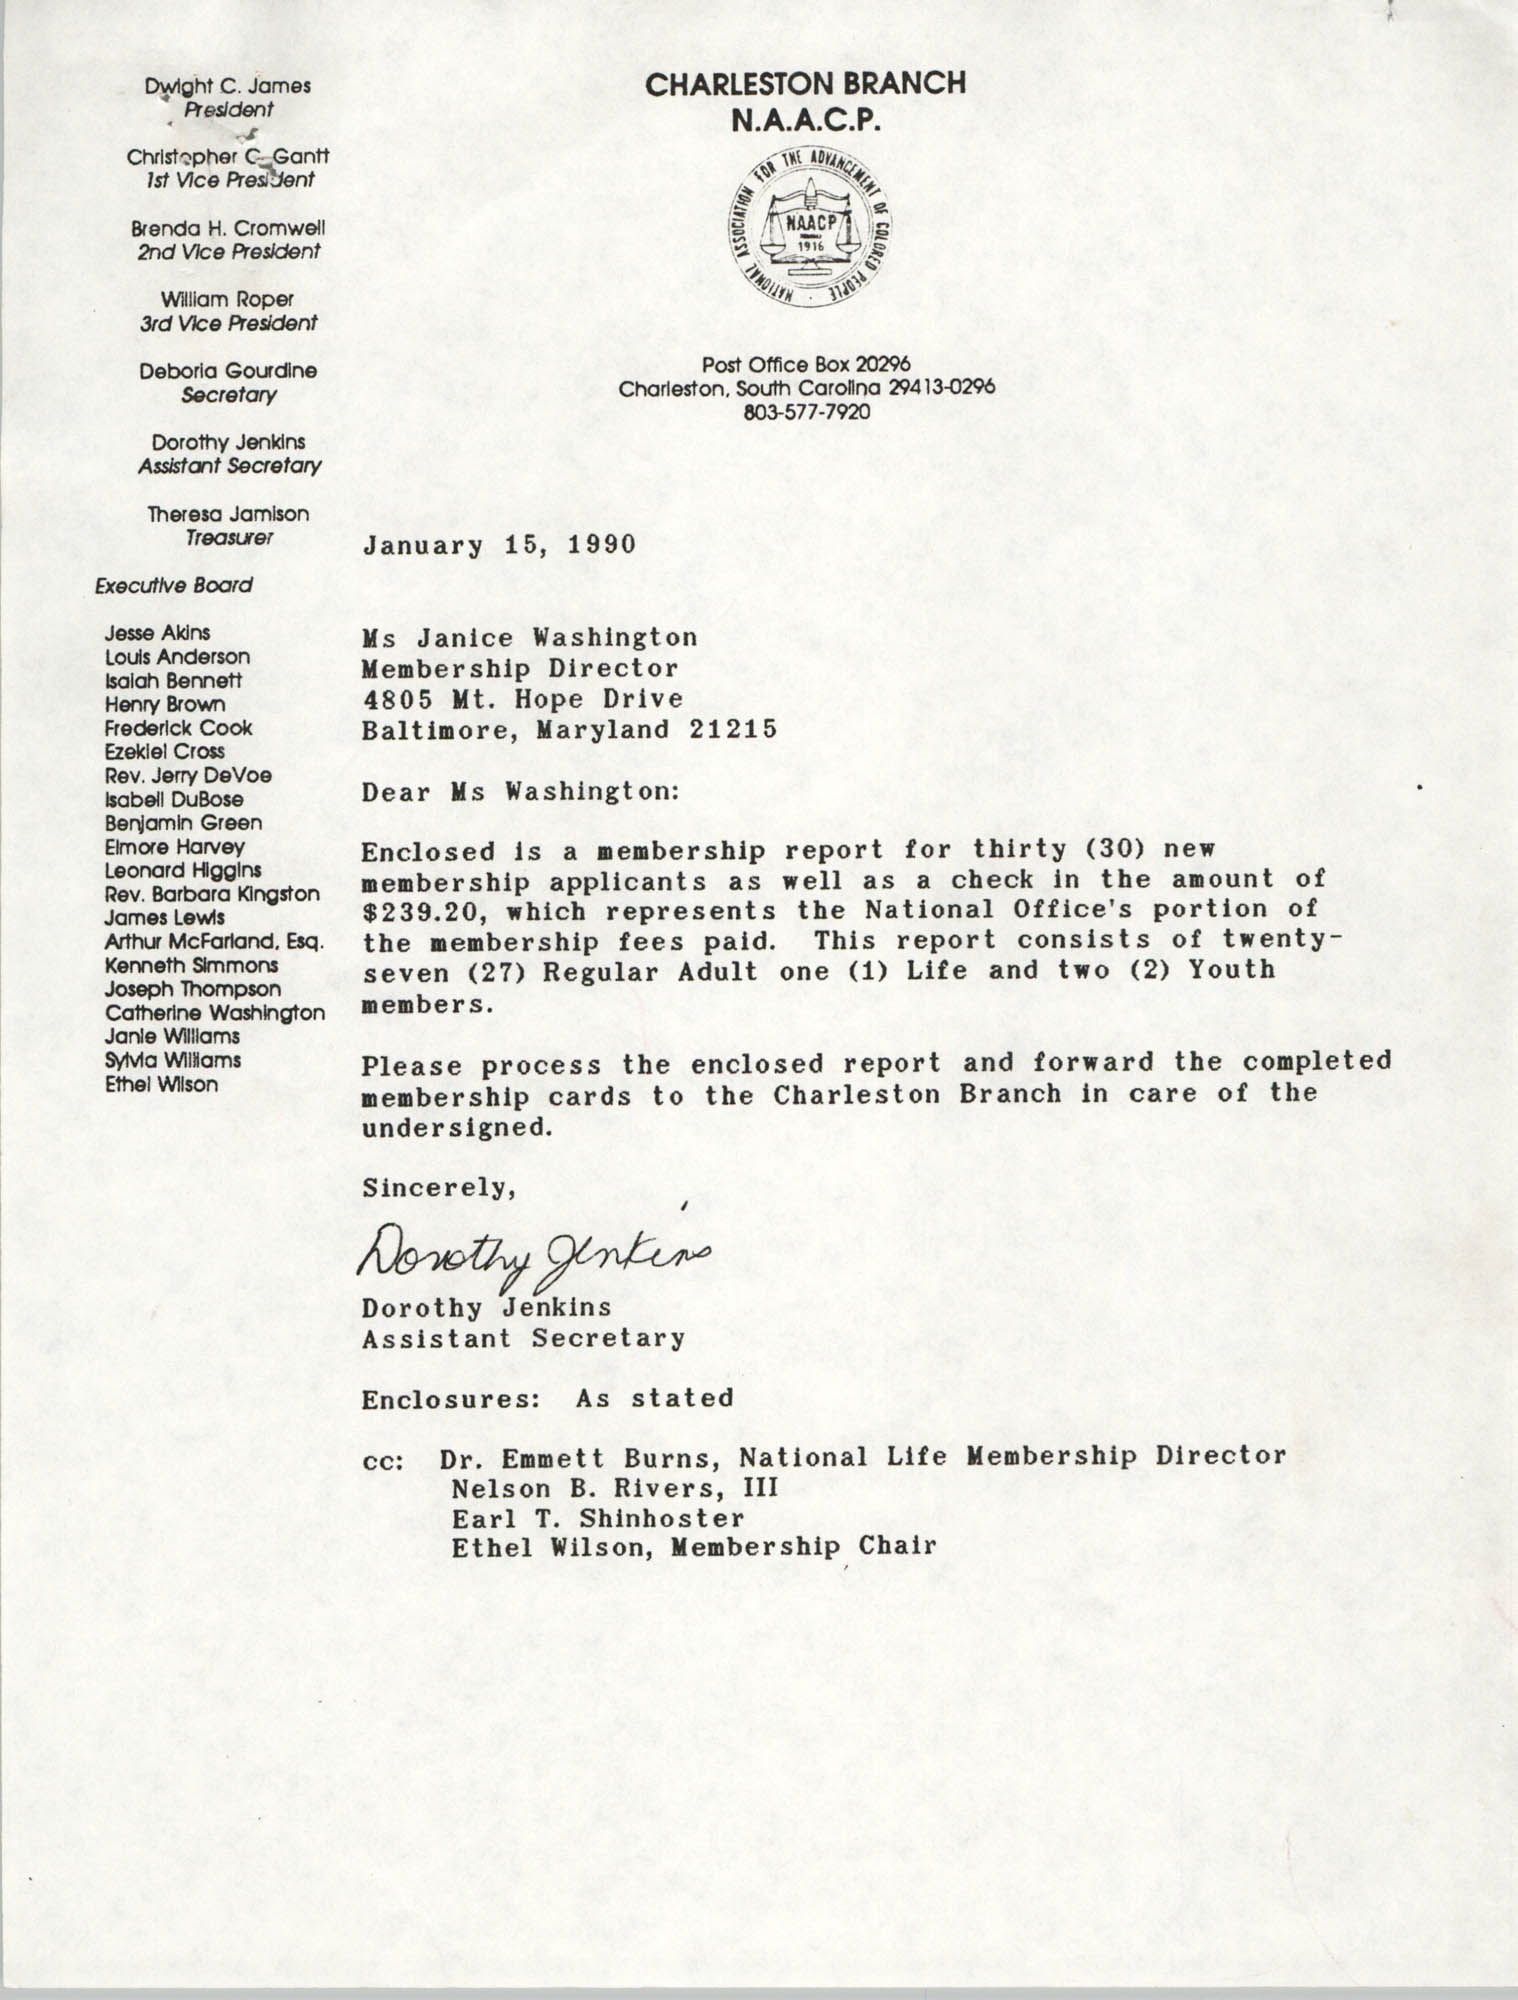 Letter from Dorothy Jenkins to Janice Washington, NAACP, January 1, 1990